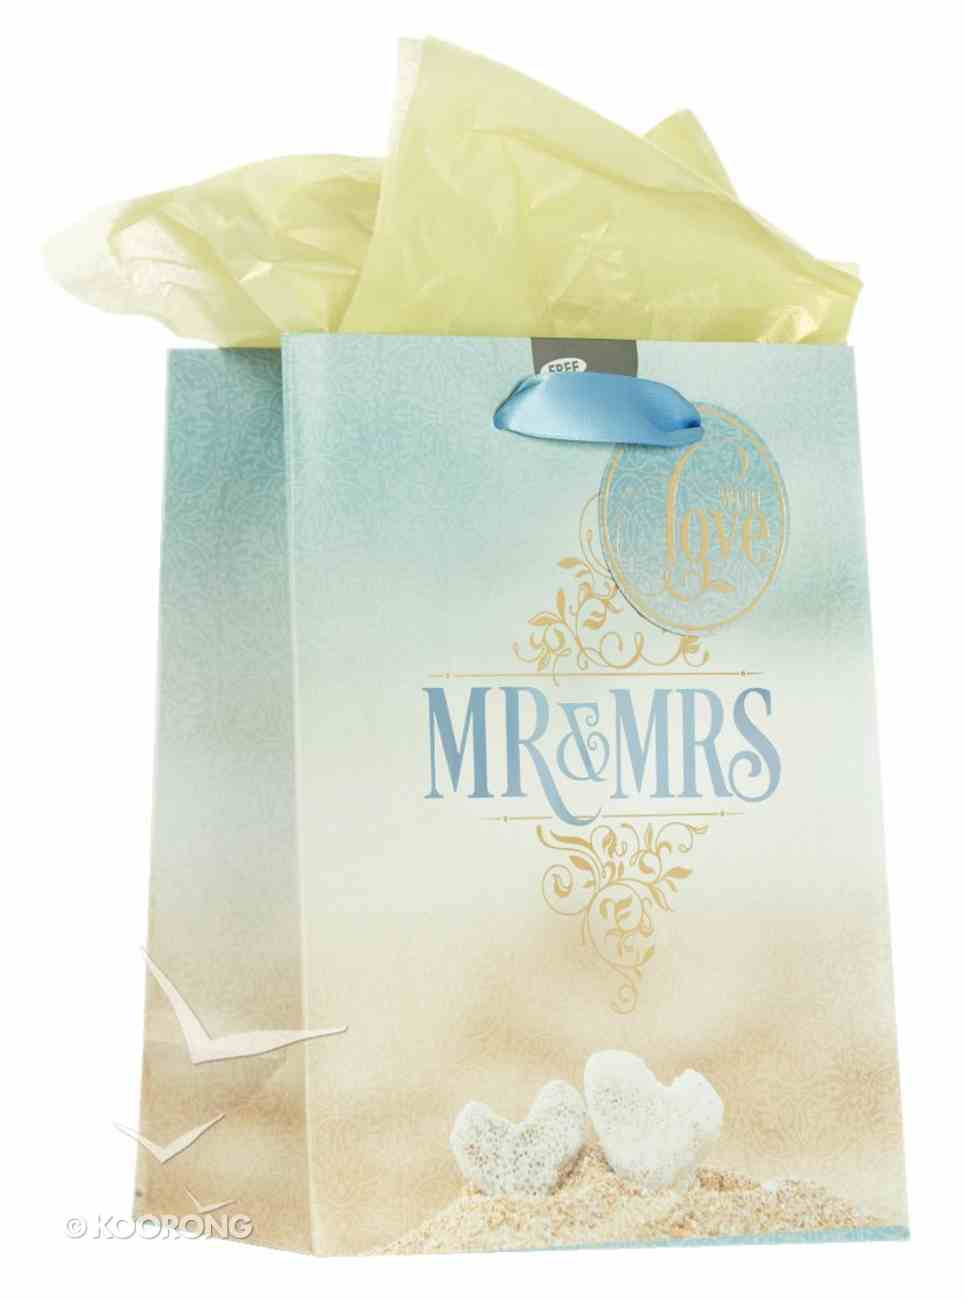 Gift Bag Medium: Mr & Mrs, Incl Tissue Paper and Gift Tag Stationery